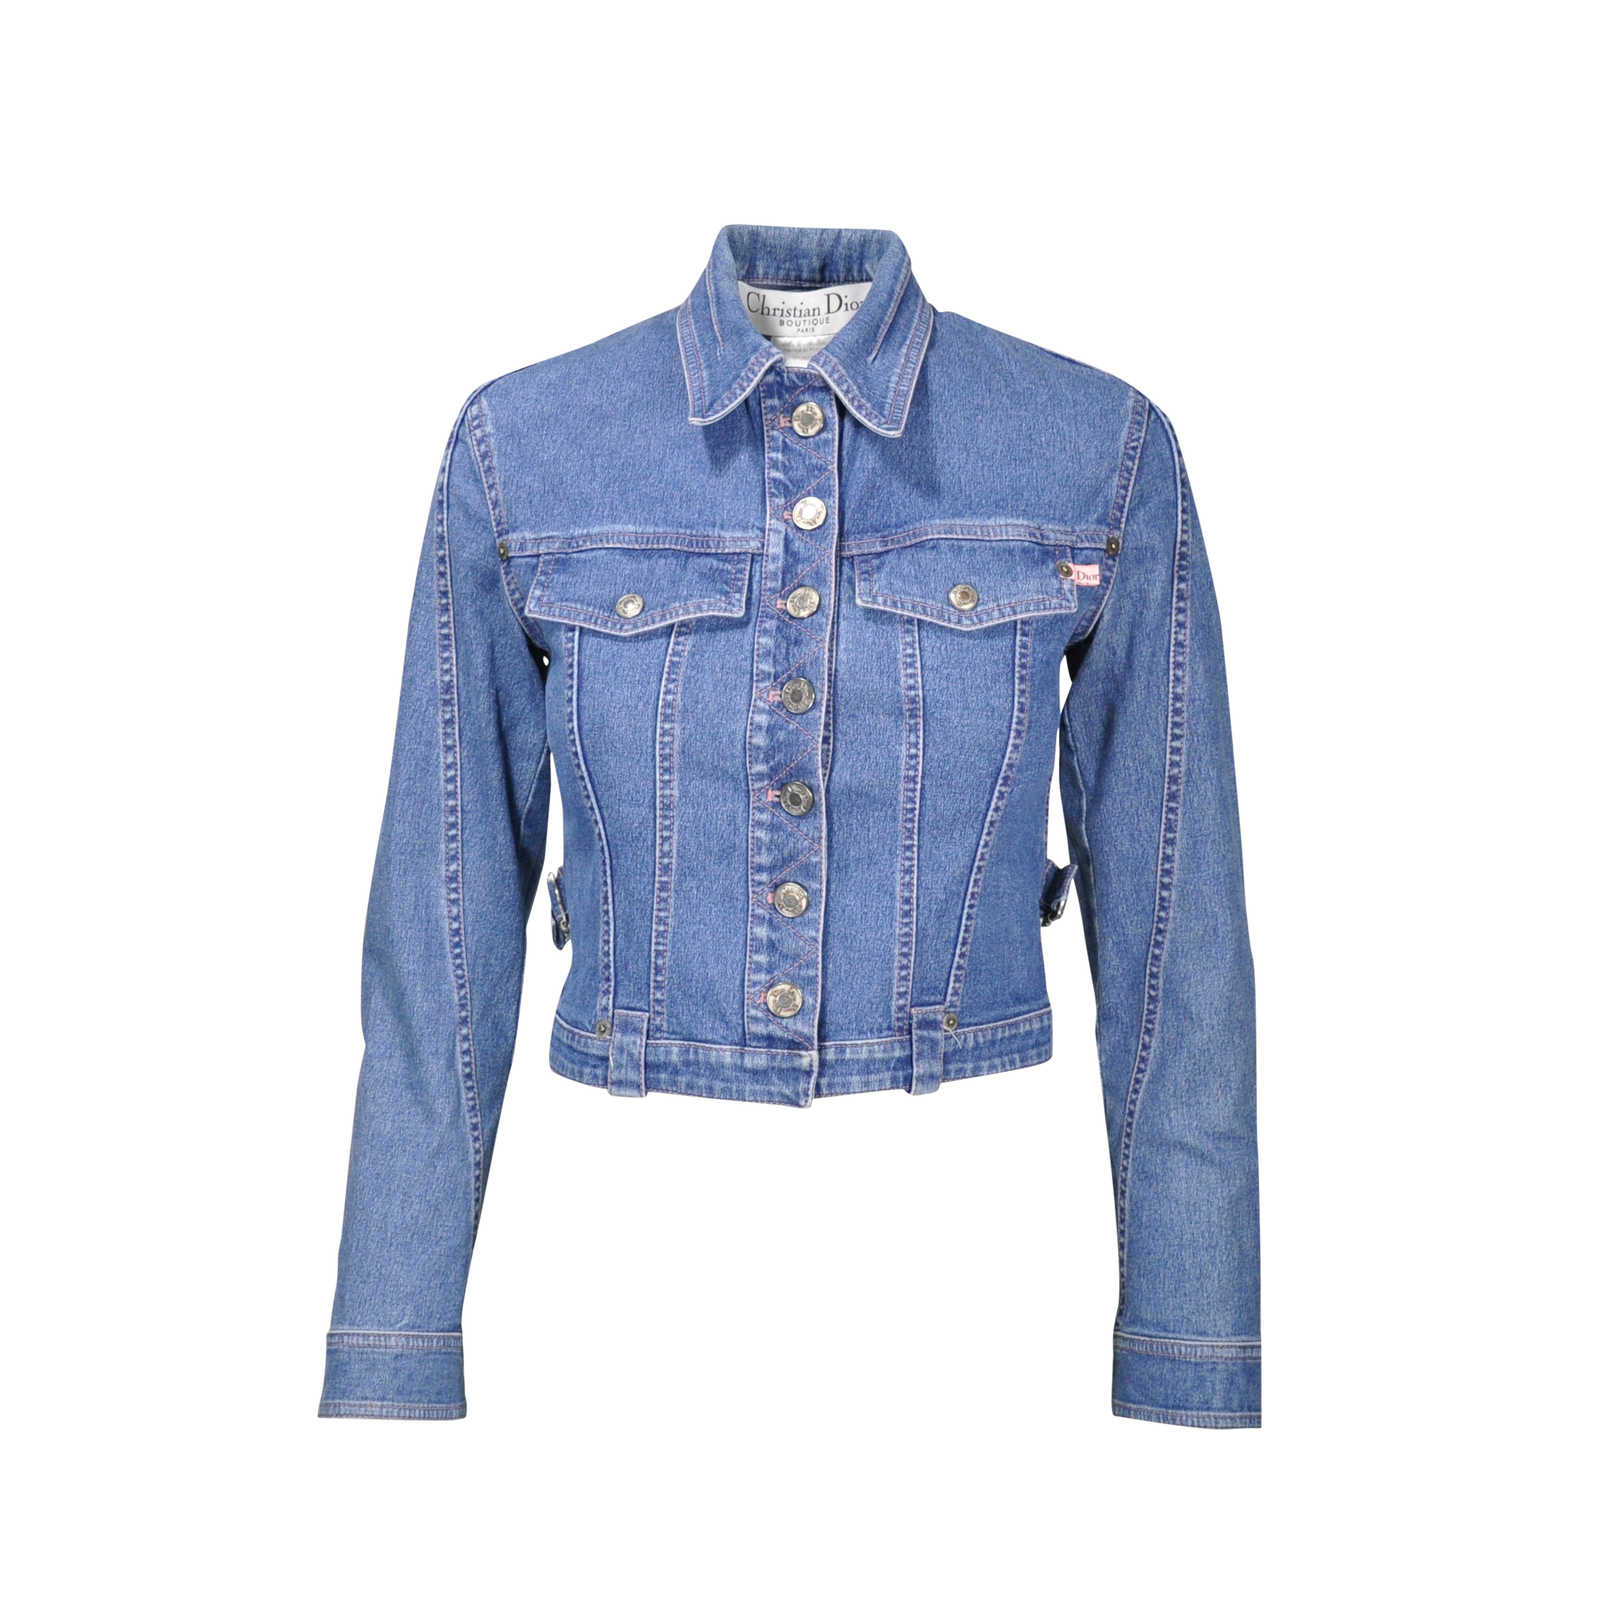 4ad4a70901c Authentic Second Hand Christian Dior Denim Jacket (PSS-240-00029) -  Thumbnail ...